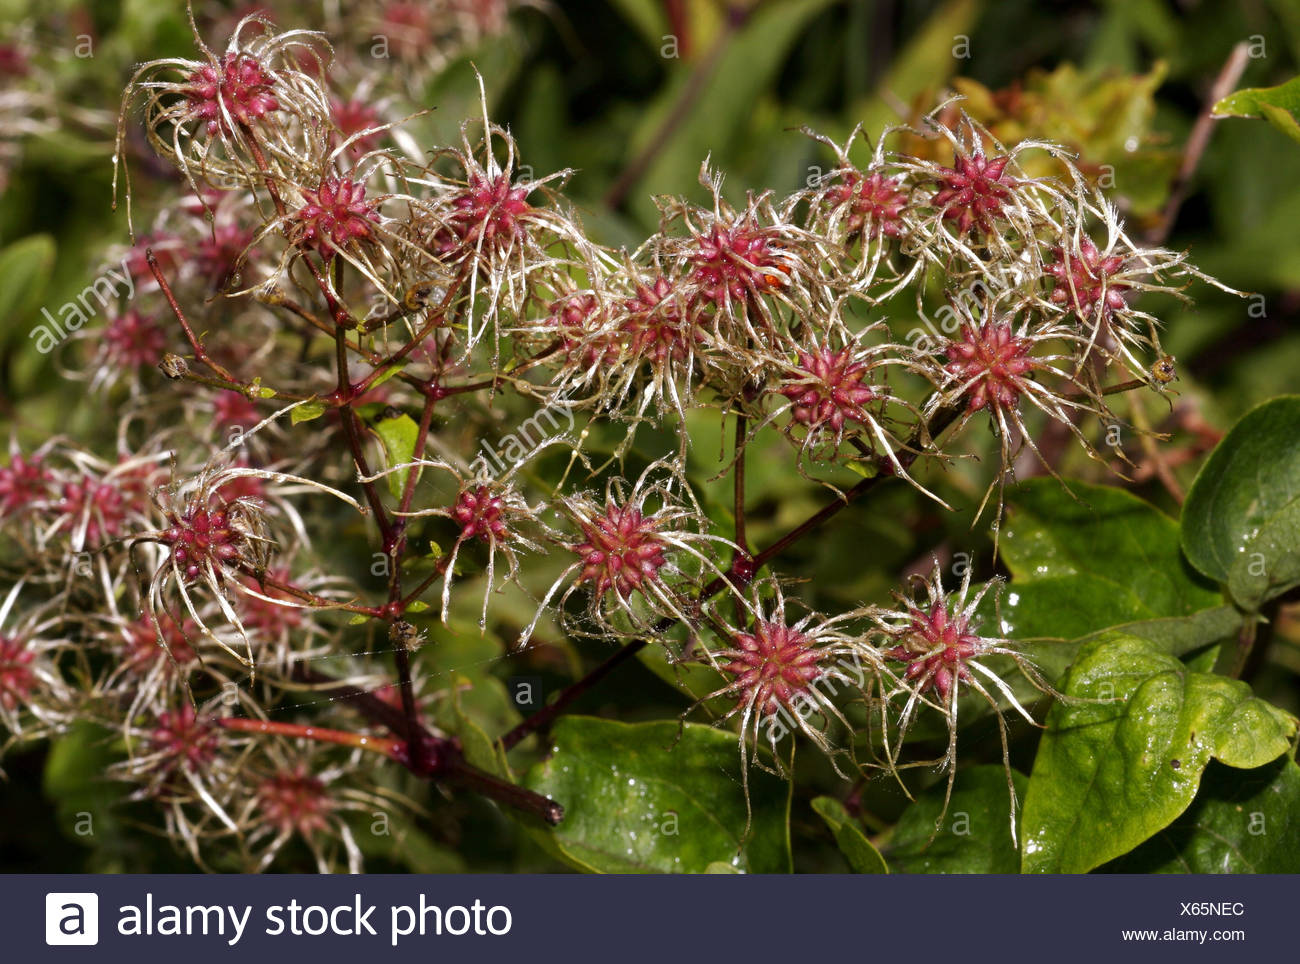 botany, Clematis, 'Clematis vitalba', infructescence, Leitha mountains, Austria, Additional-Rights-Clearance-Info-Not-Available - Stock Image